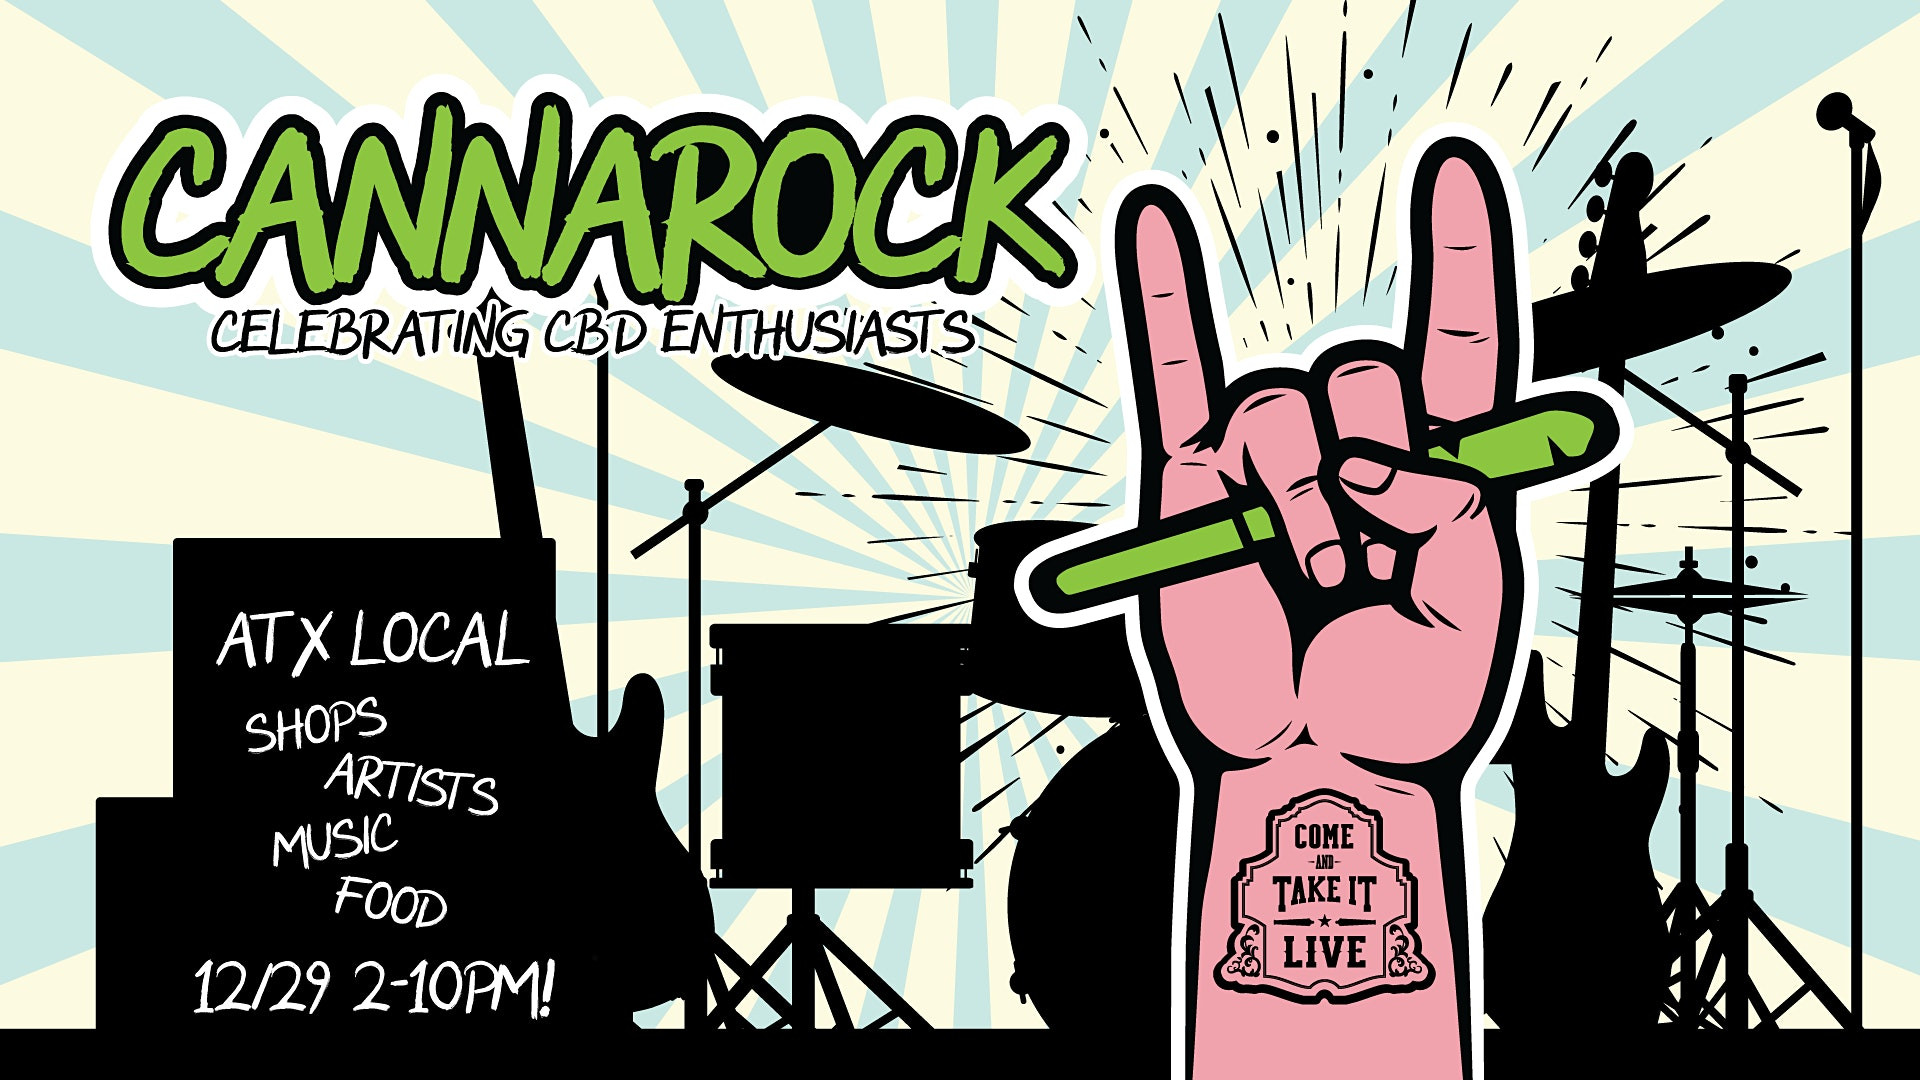 Cannarock Celebrating Cbd Enthusiasts Tickets Come And Take